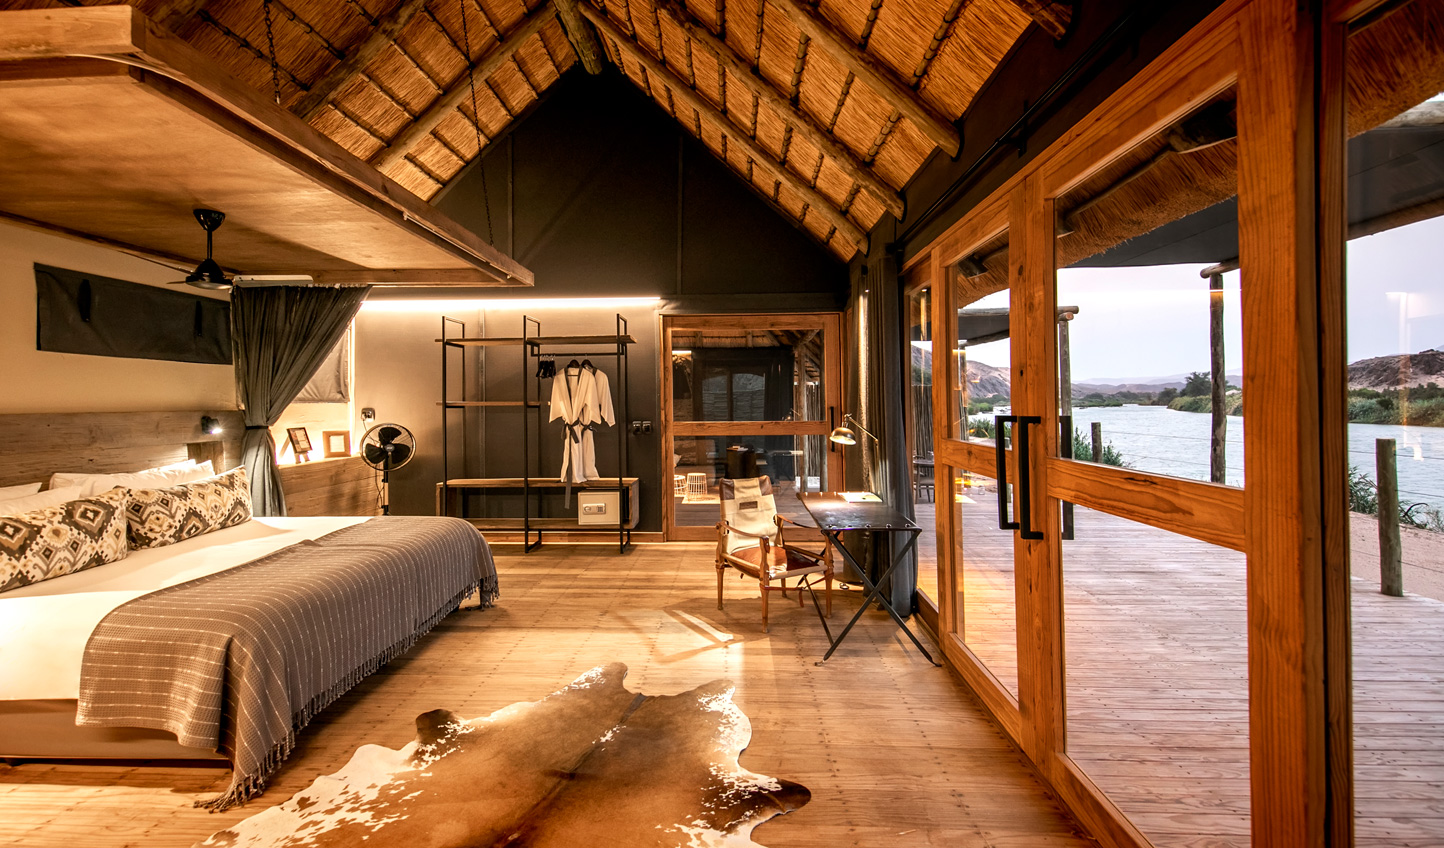 Wake up to panoramic views across this vast and remote land